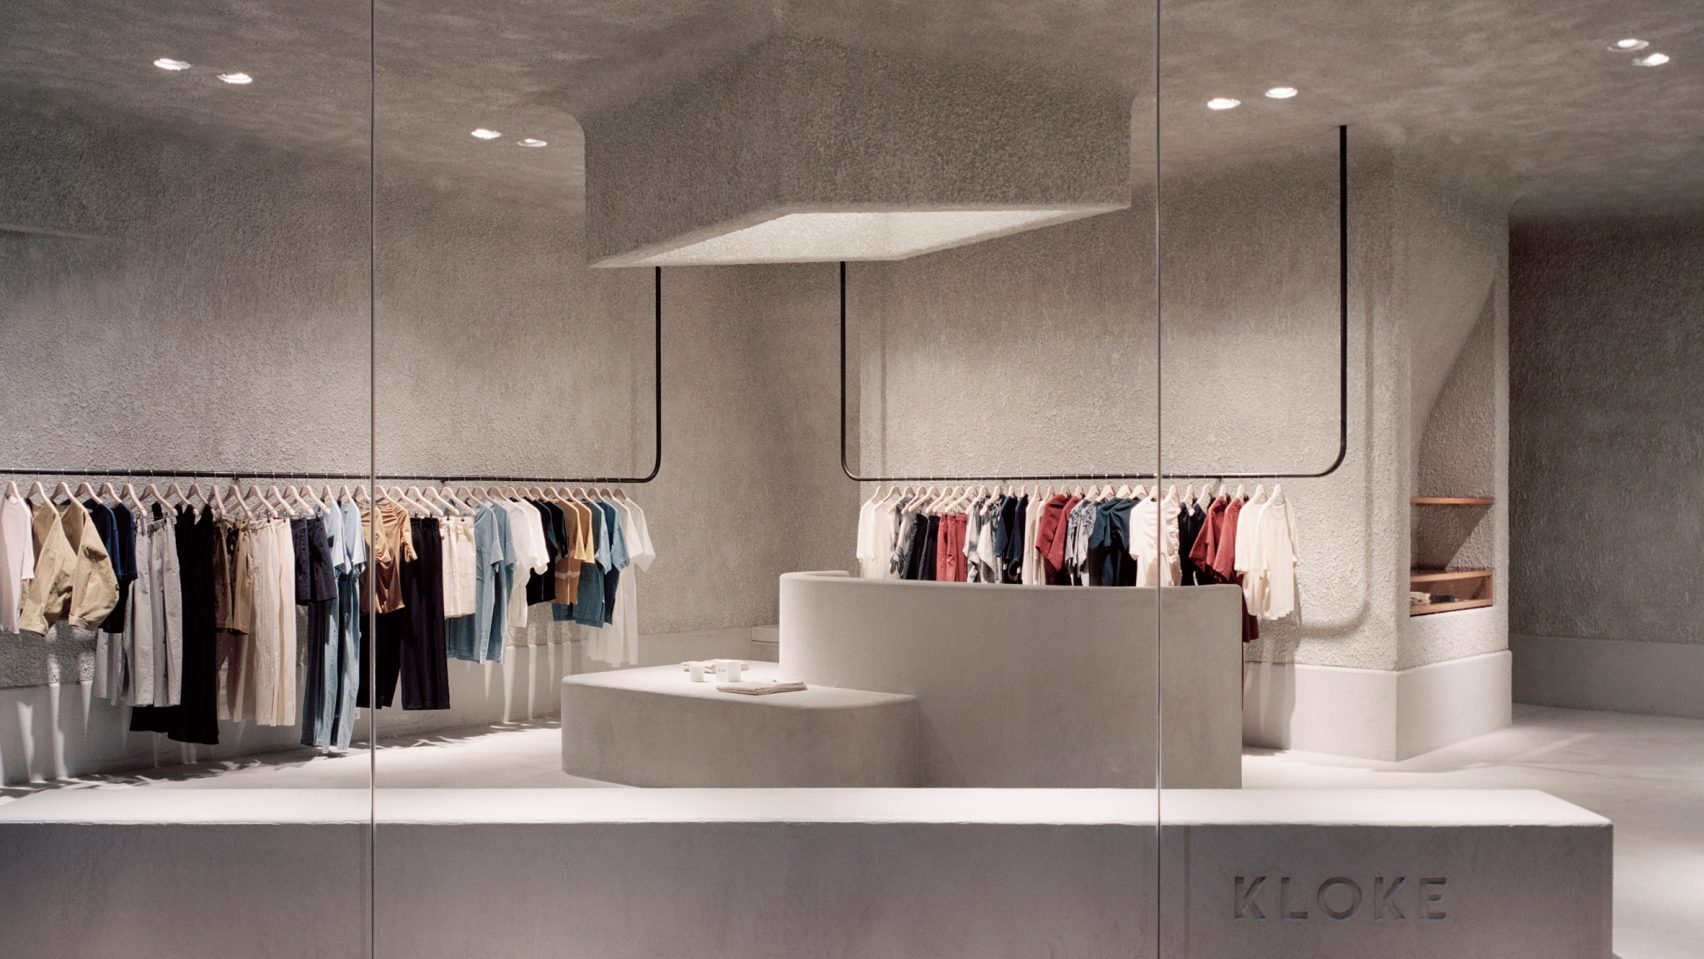 New idea for concrete clothing store interior decoration furniture ...